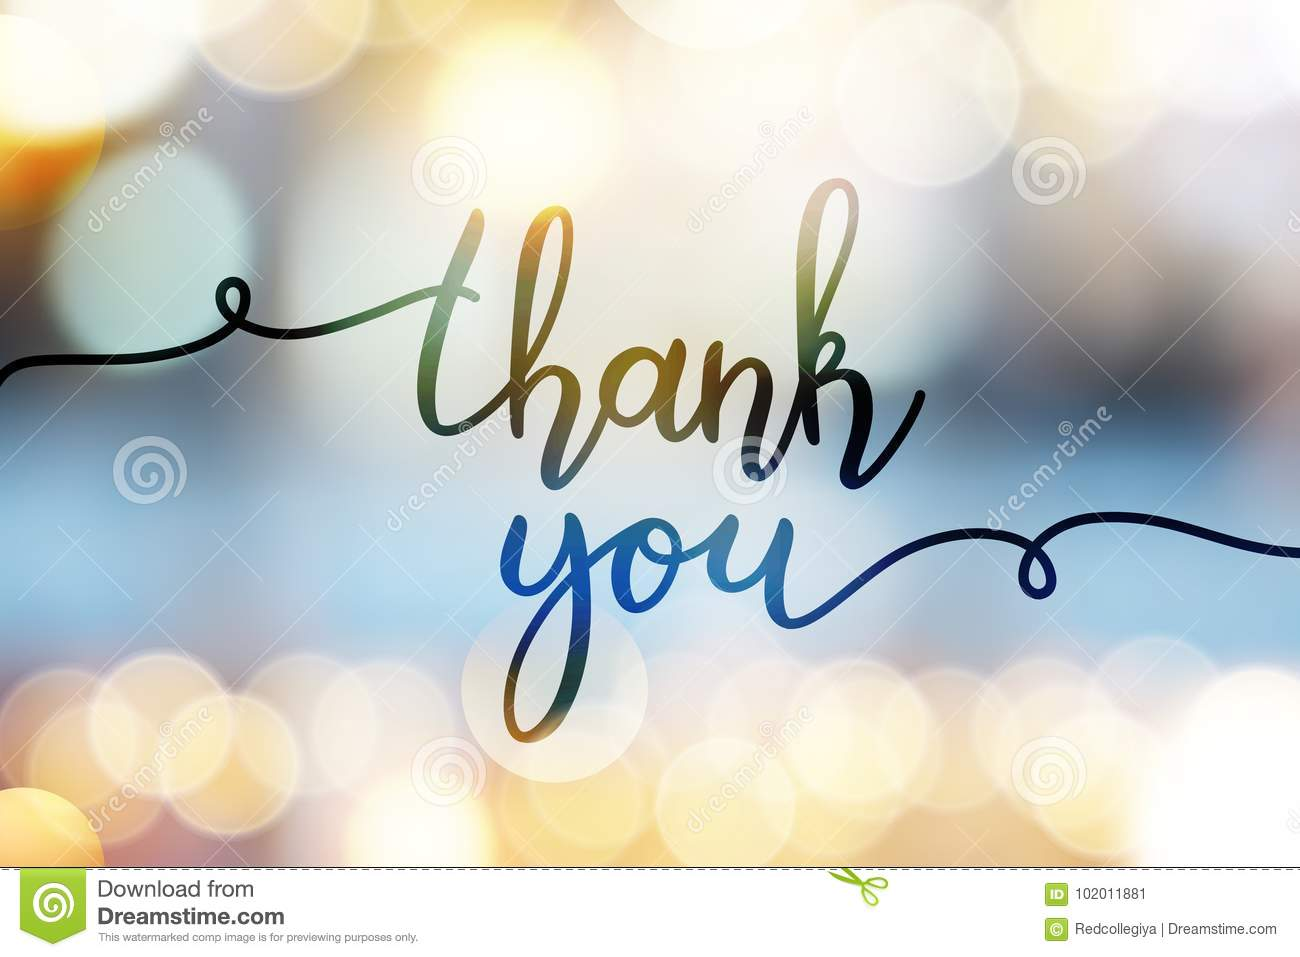 25 977 Thank You Photos Free Royalty Free Stock Photos From Dreamstime